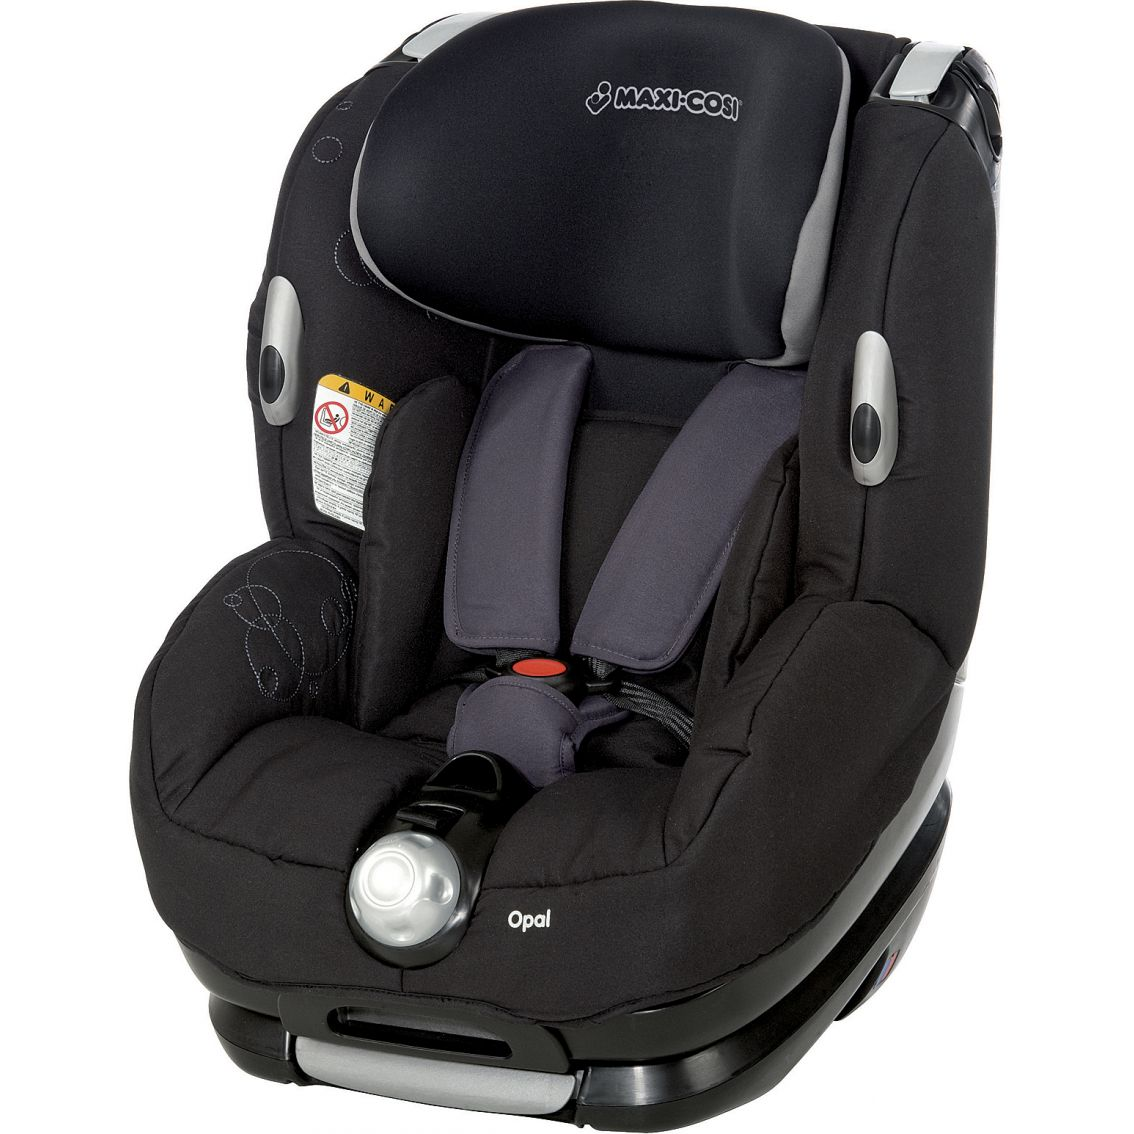 maxi cosi opal car seat 2013. Black Bedroom Furniture Sets. Home Design Ideas